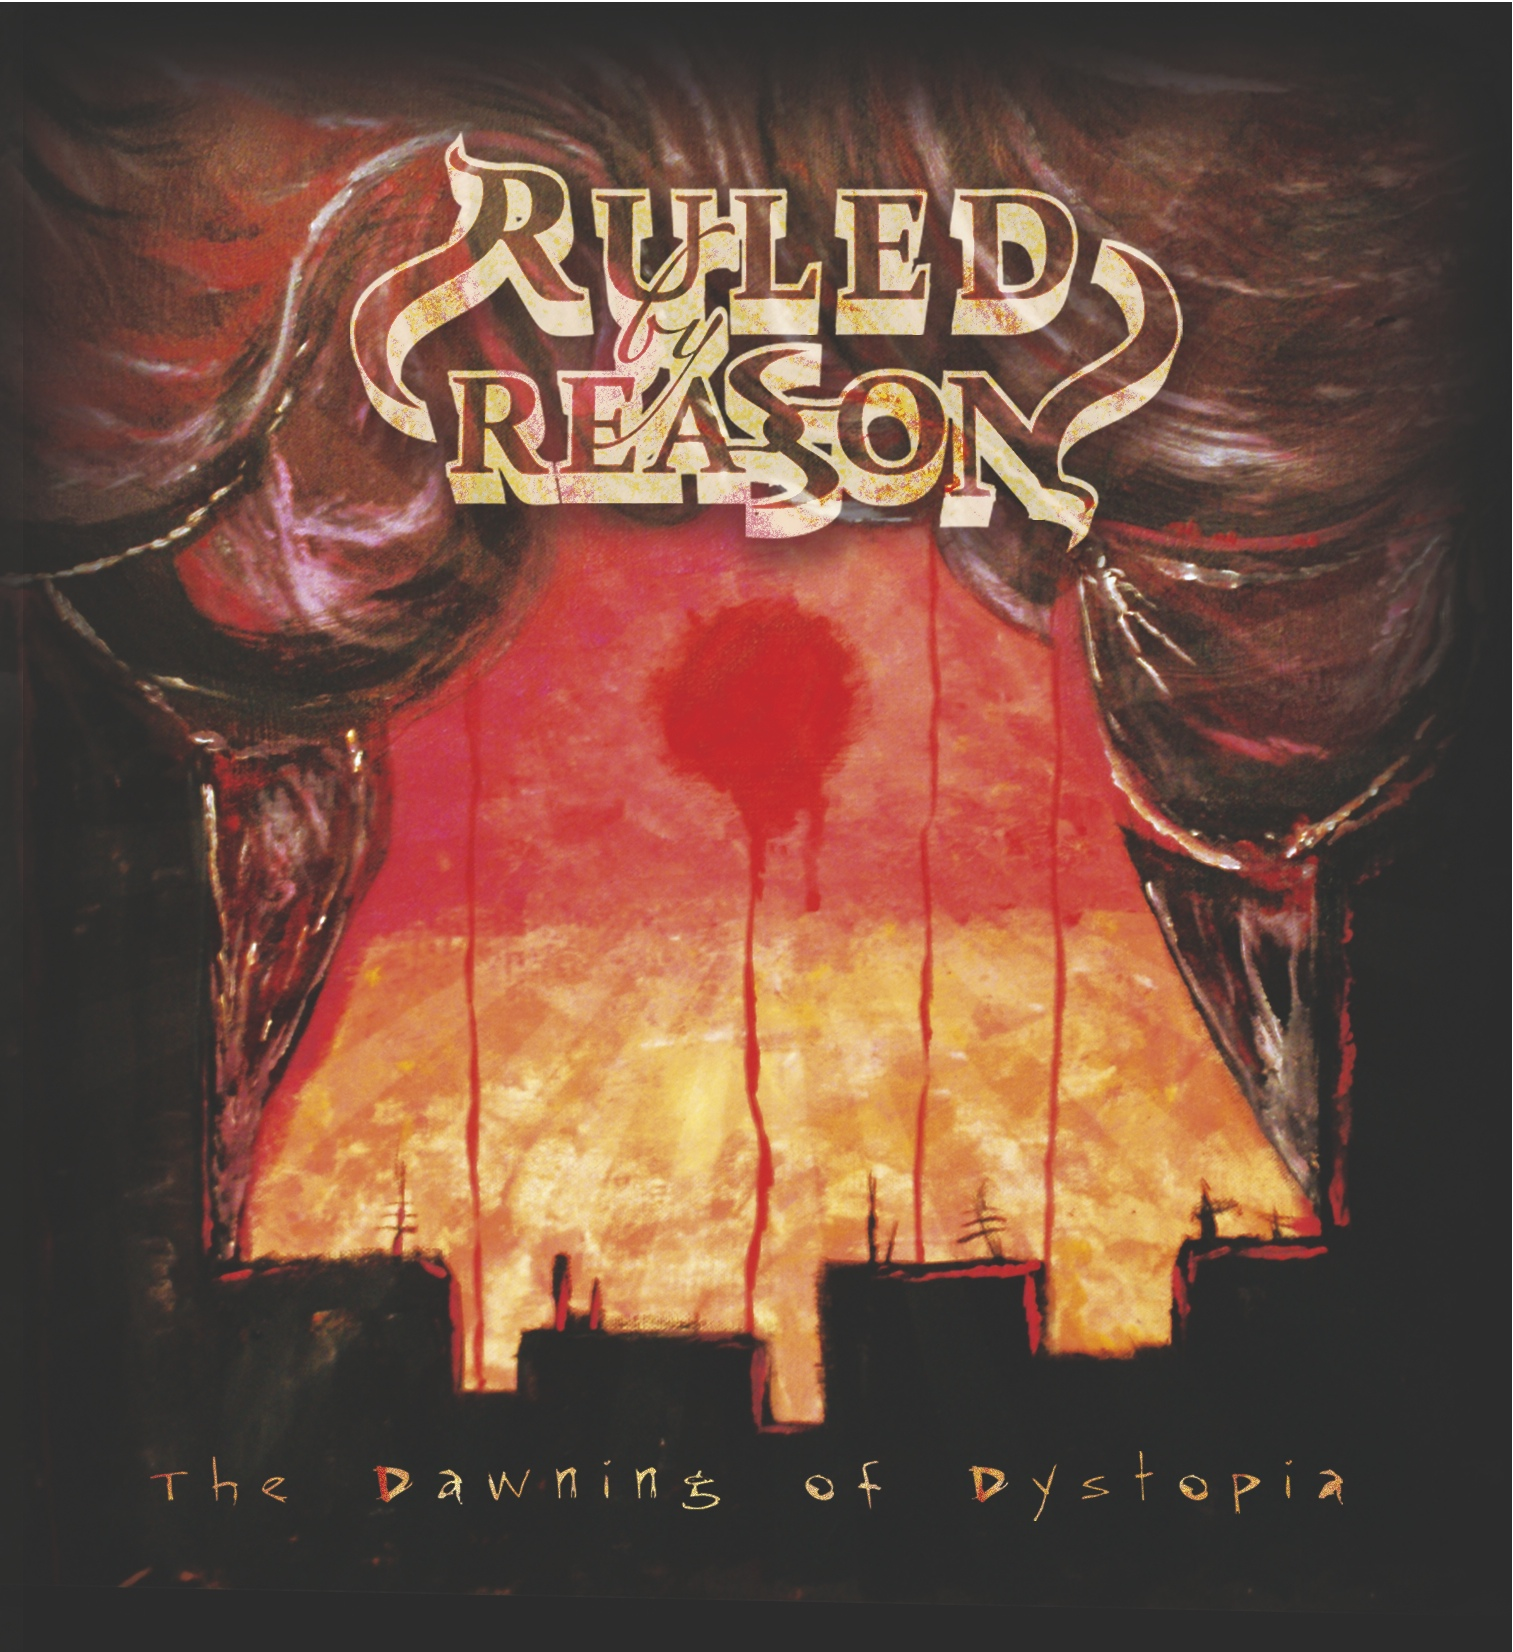 Ruled-by-Reason-The-dawning-of-dystopia